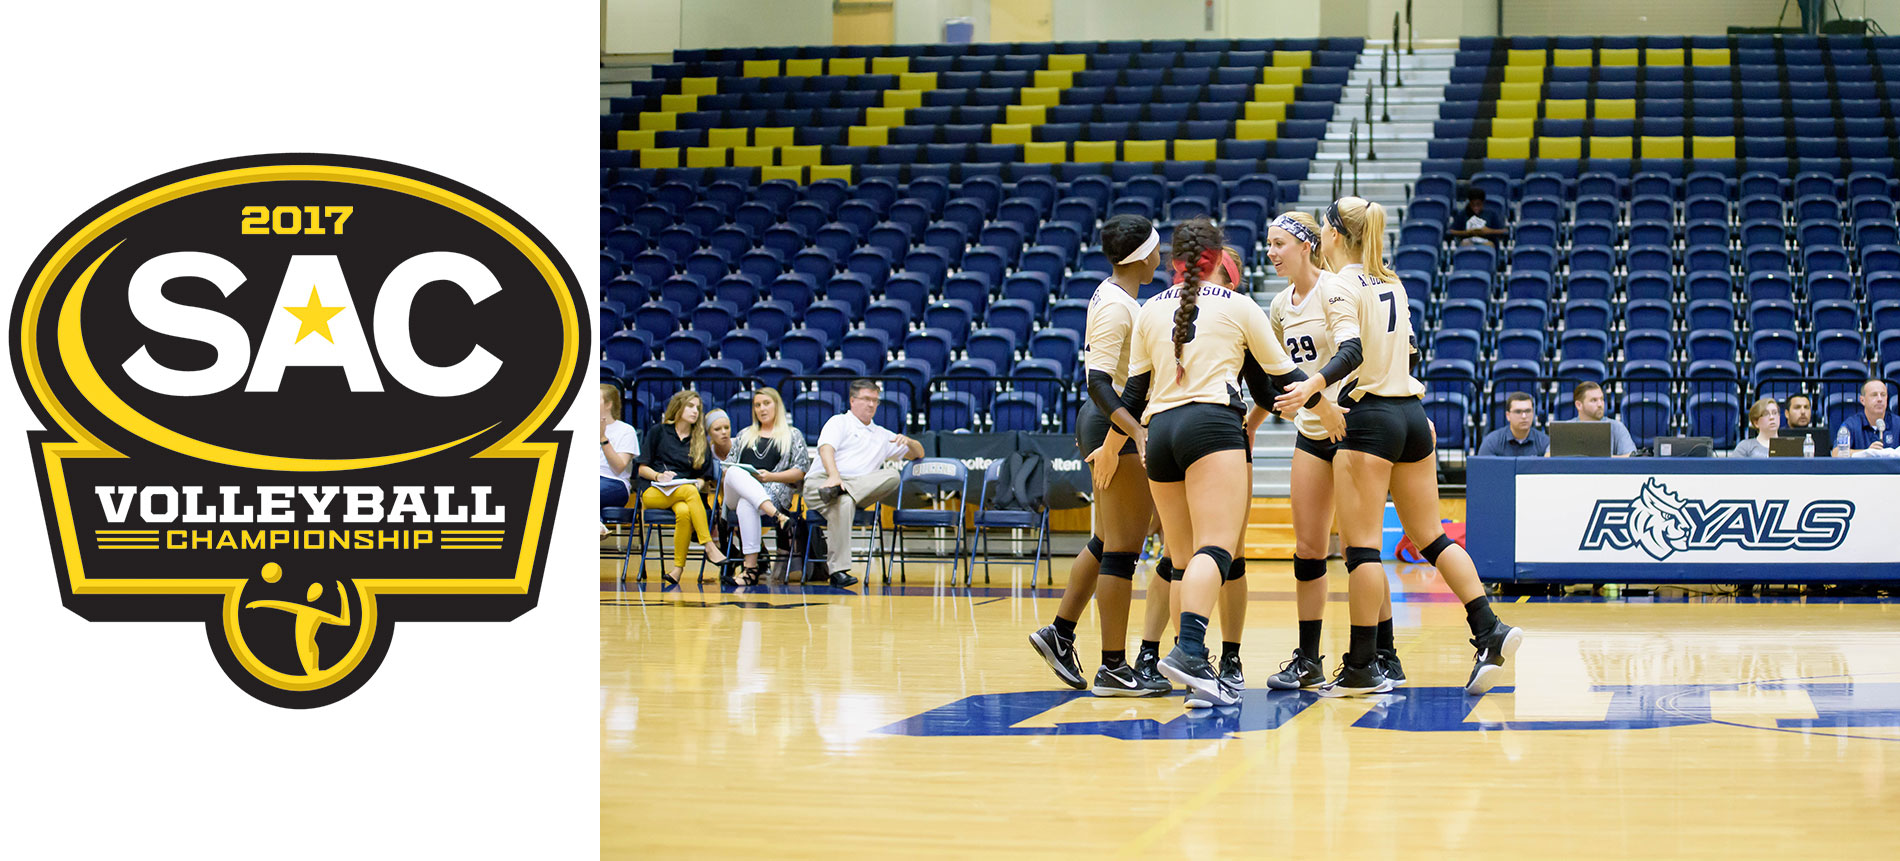 Top-Seeded Trojans Set for Sixth Straight SAC Volleyball Tournament Appearance